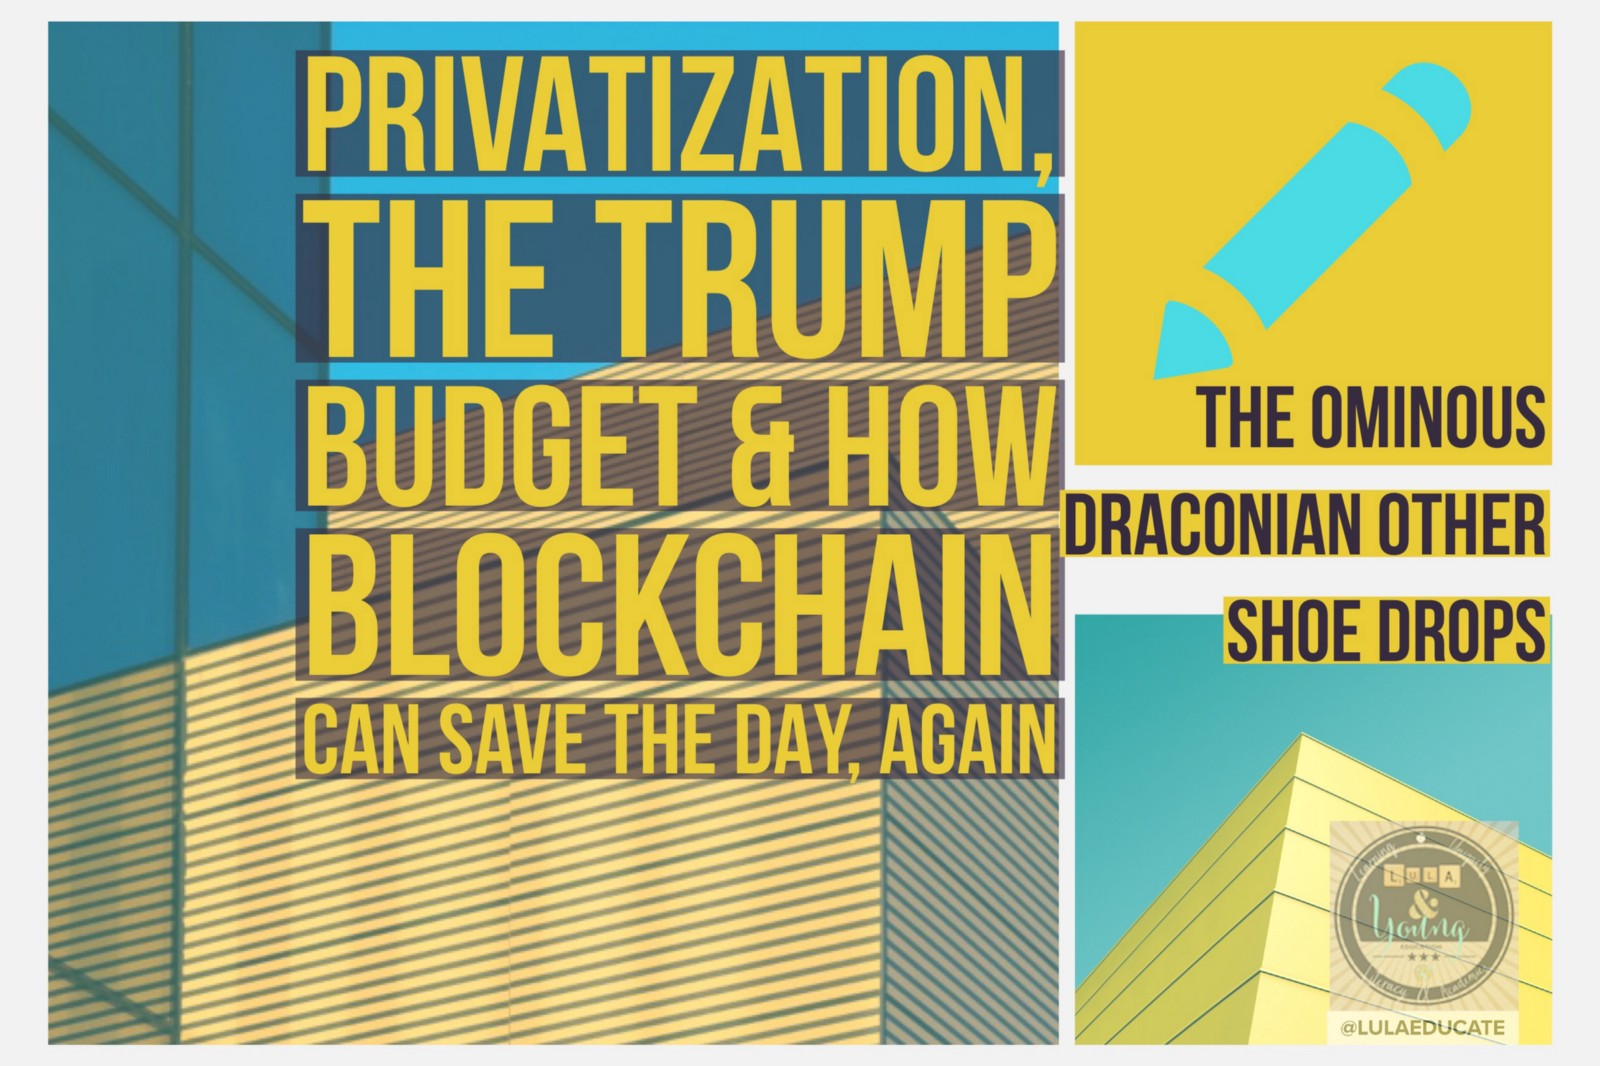 Trump Administration Weighs In On Fape >> The Ominous Draconian Other Shoe Drops Privatization The Trump